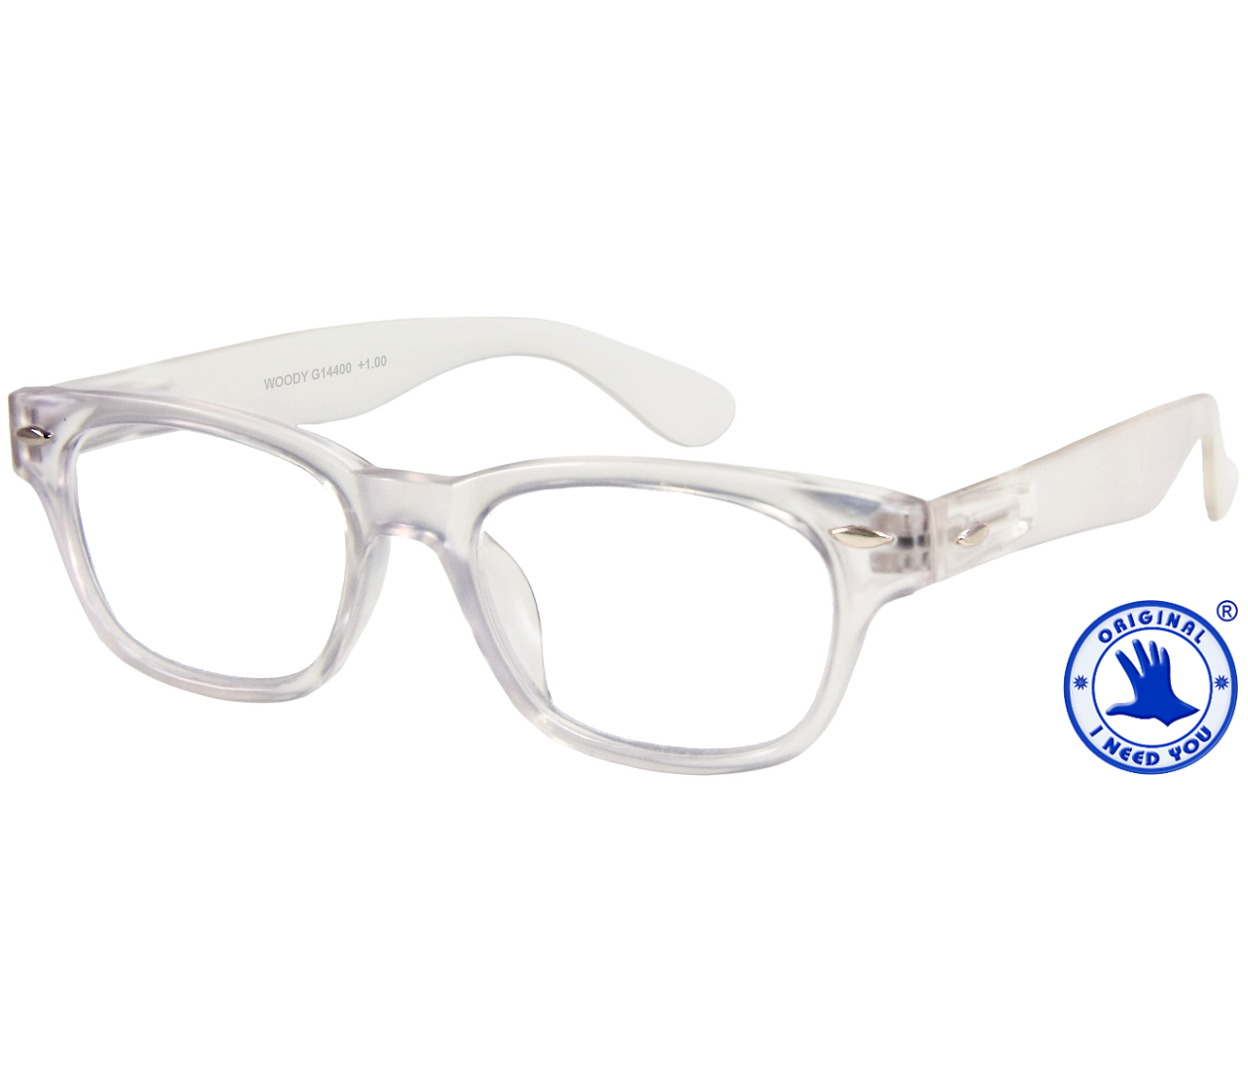 Woody (Clear) Reading Glasses - Tiger Specs